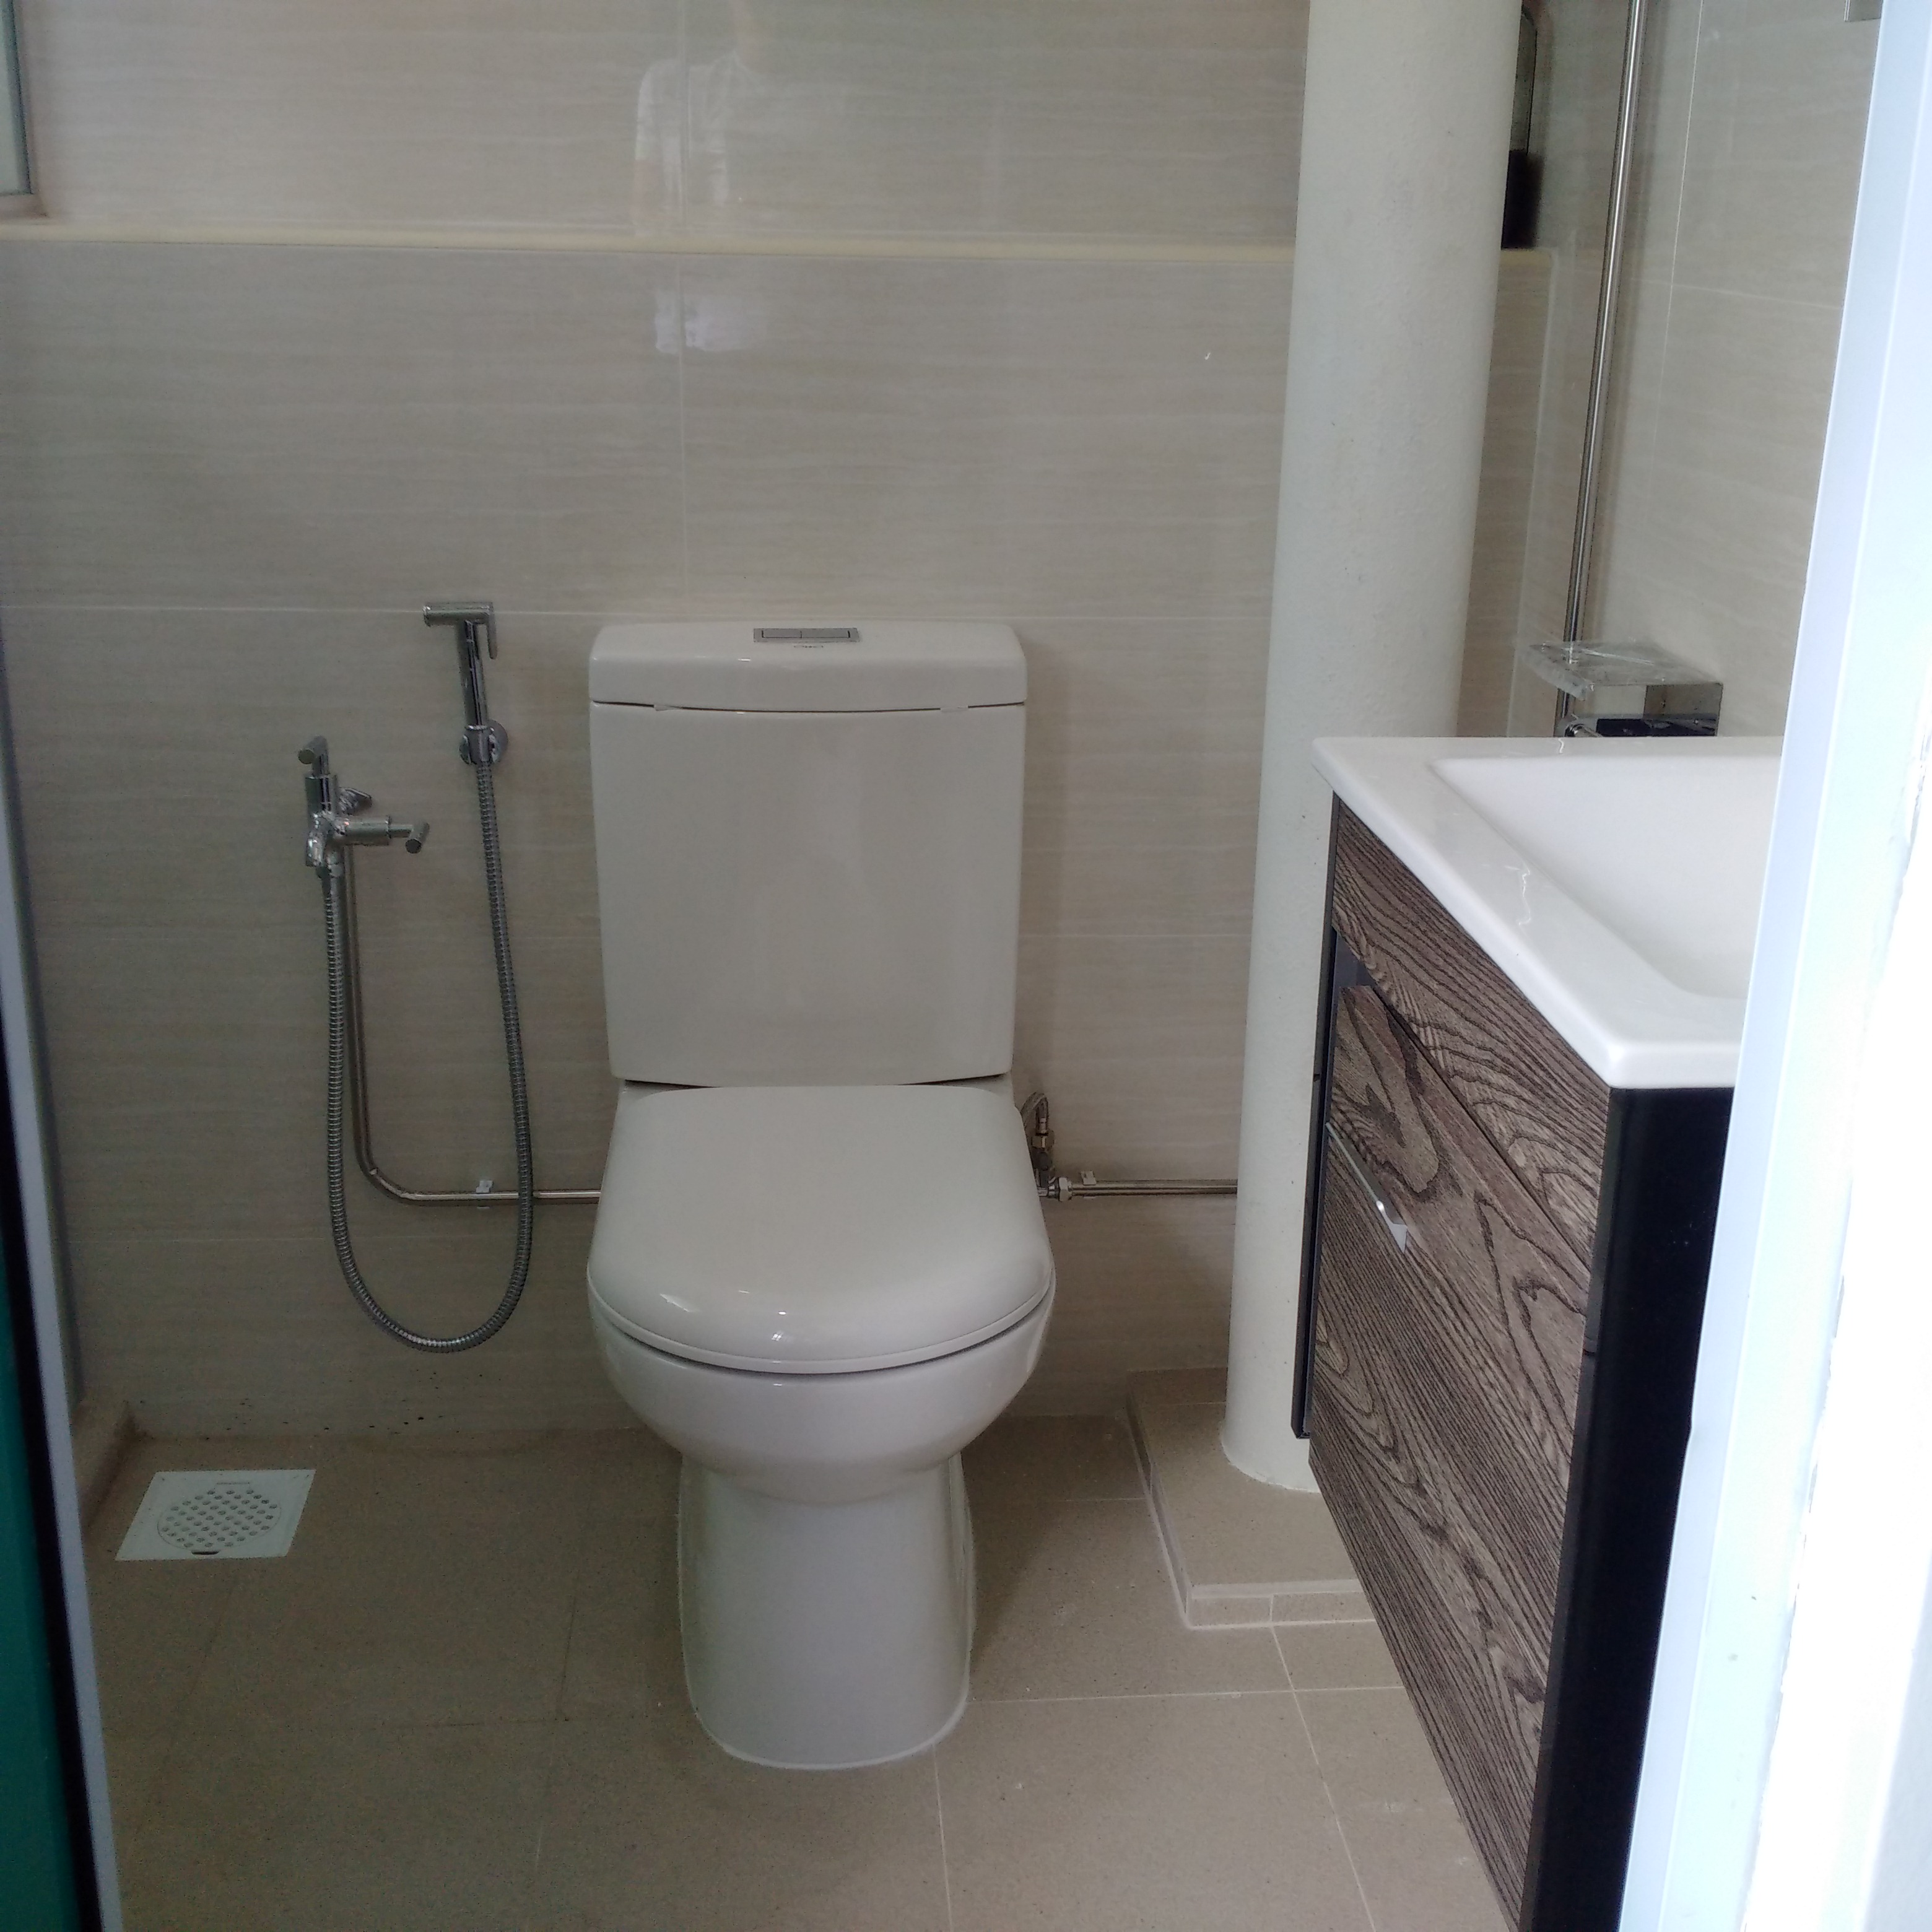 Toilet Facelift at Pasir Ris by Brilliance - view 2